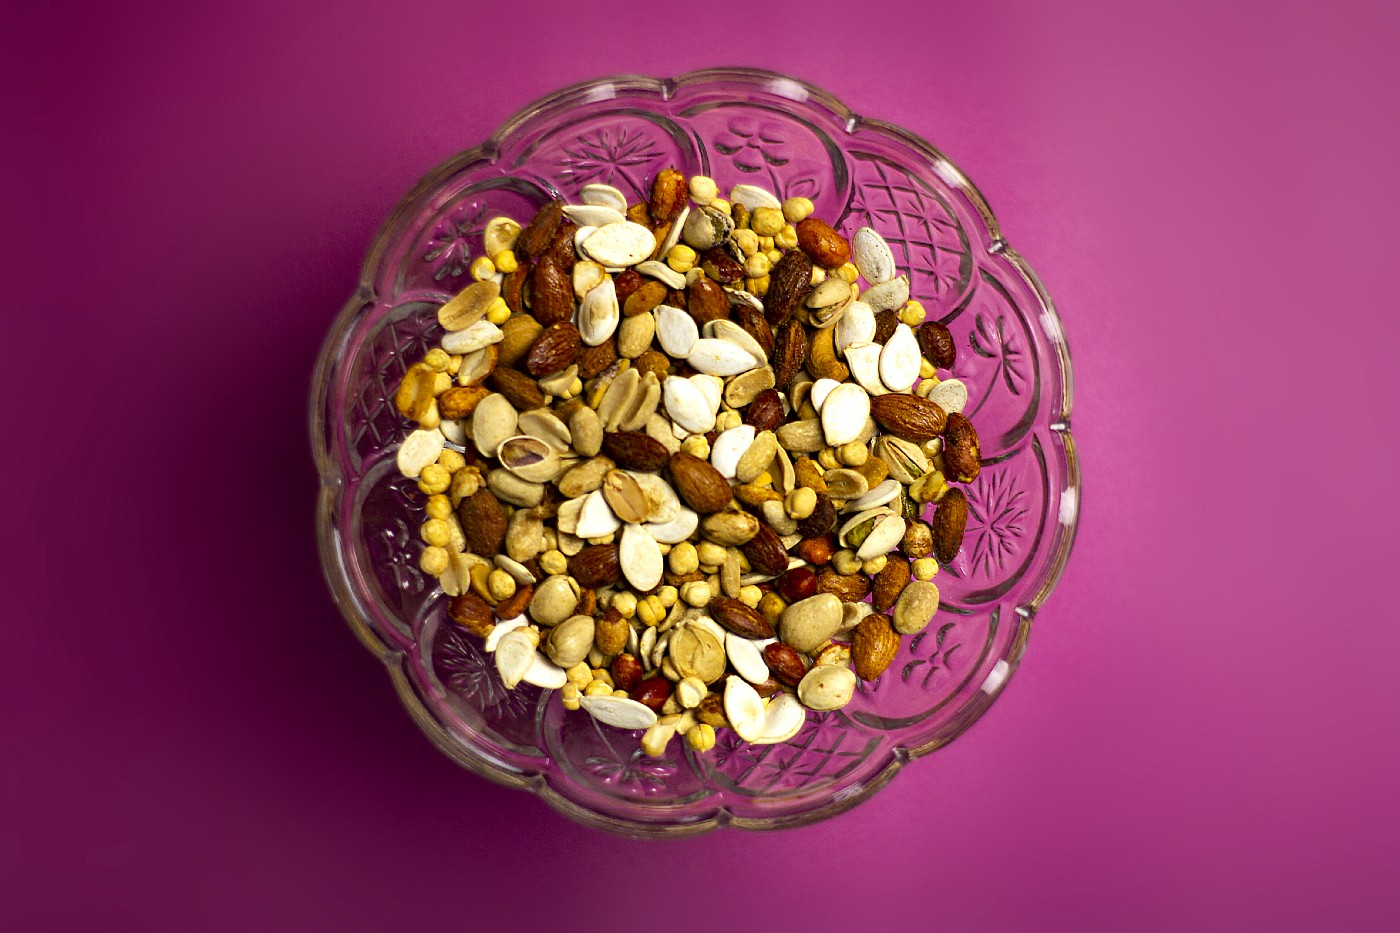 a glass bowl of nuts and dried fruit sitting on a colorful background